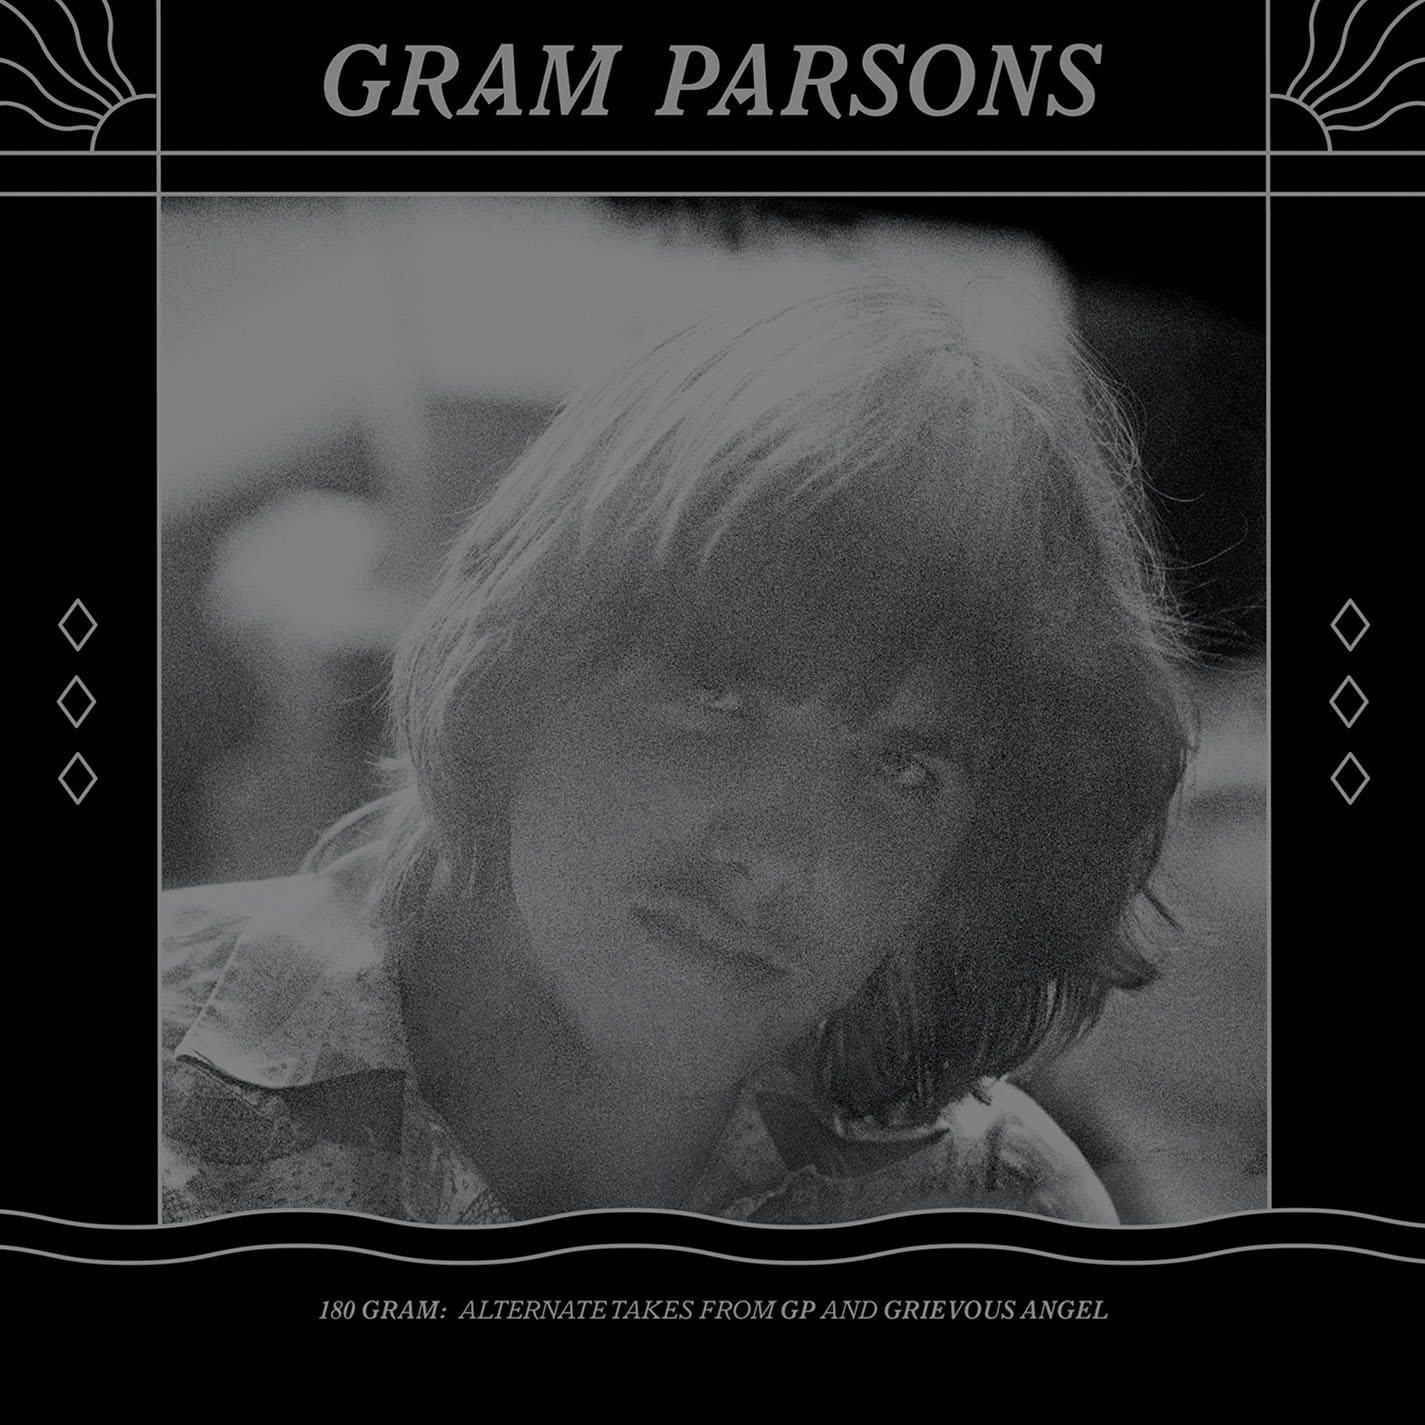 Gram Parsons - 180 Gram: Alternate Takes from GP and Grievous Angel